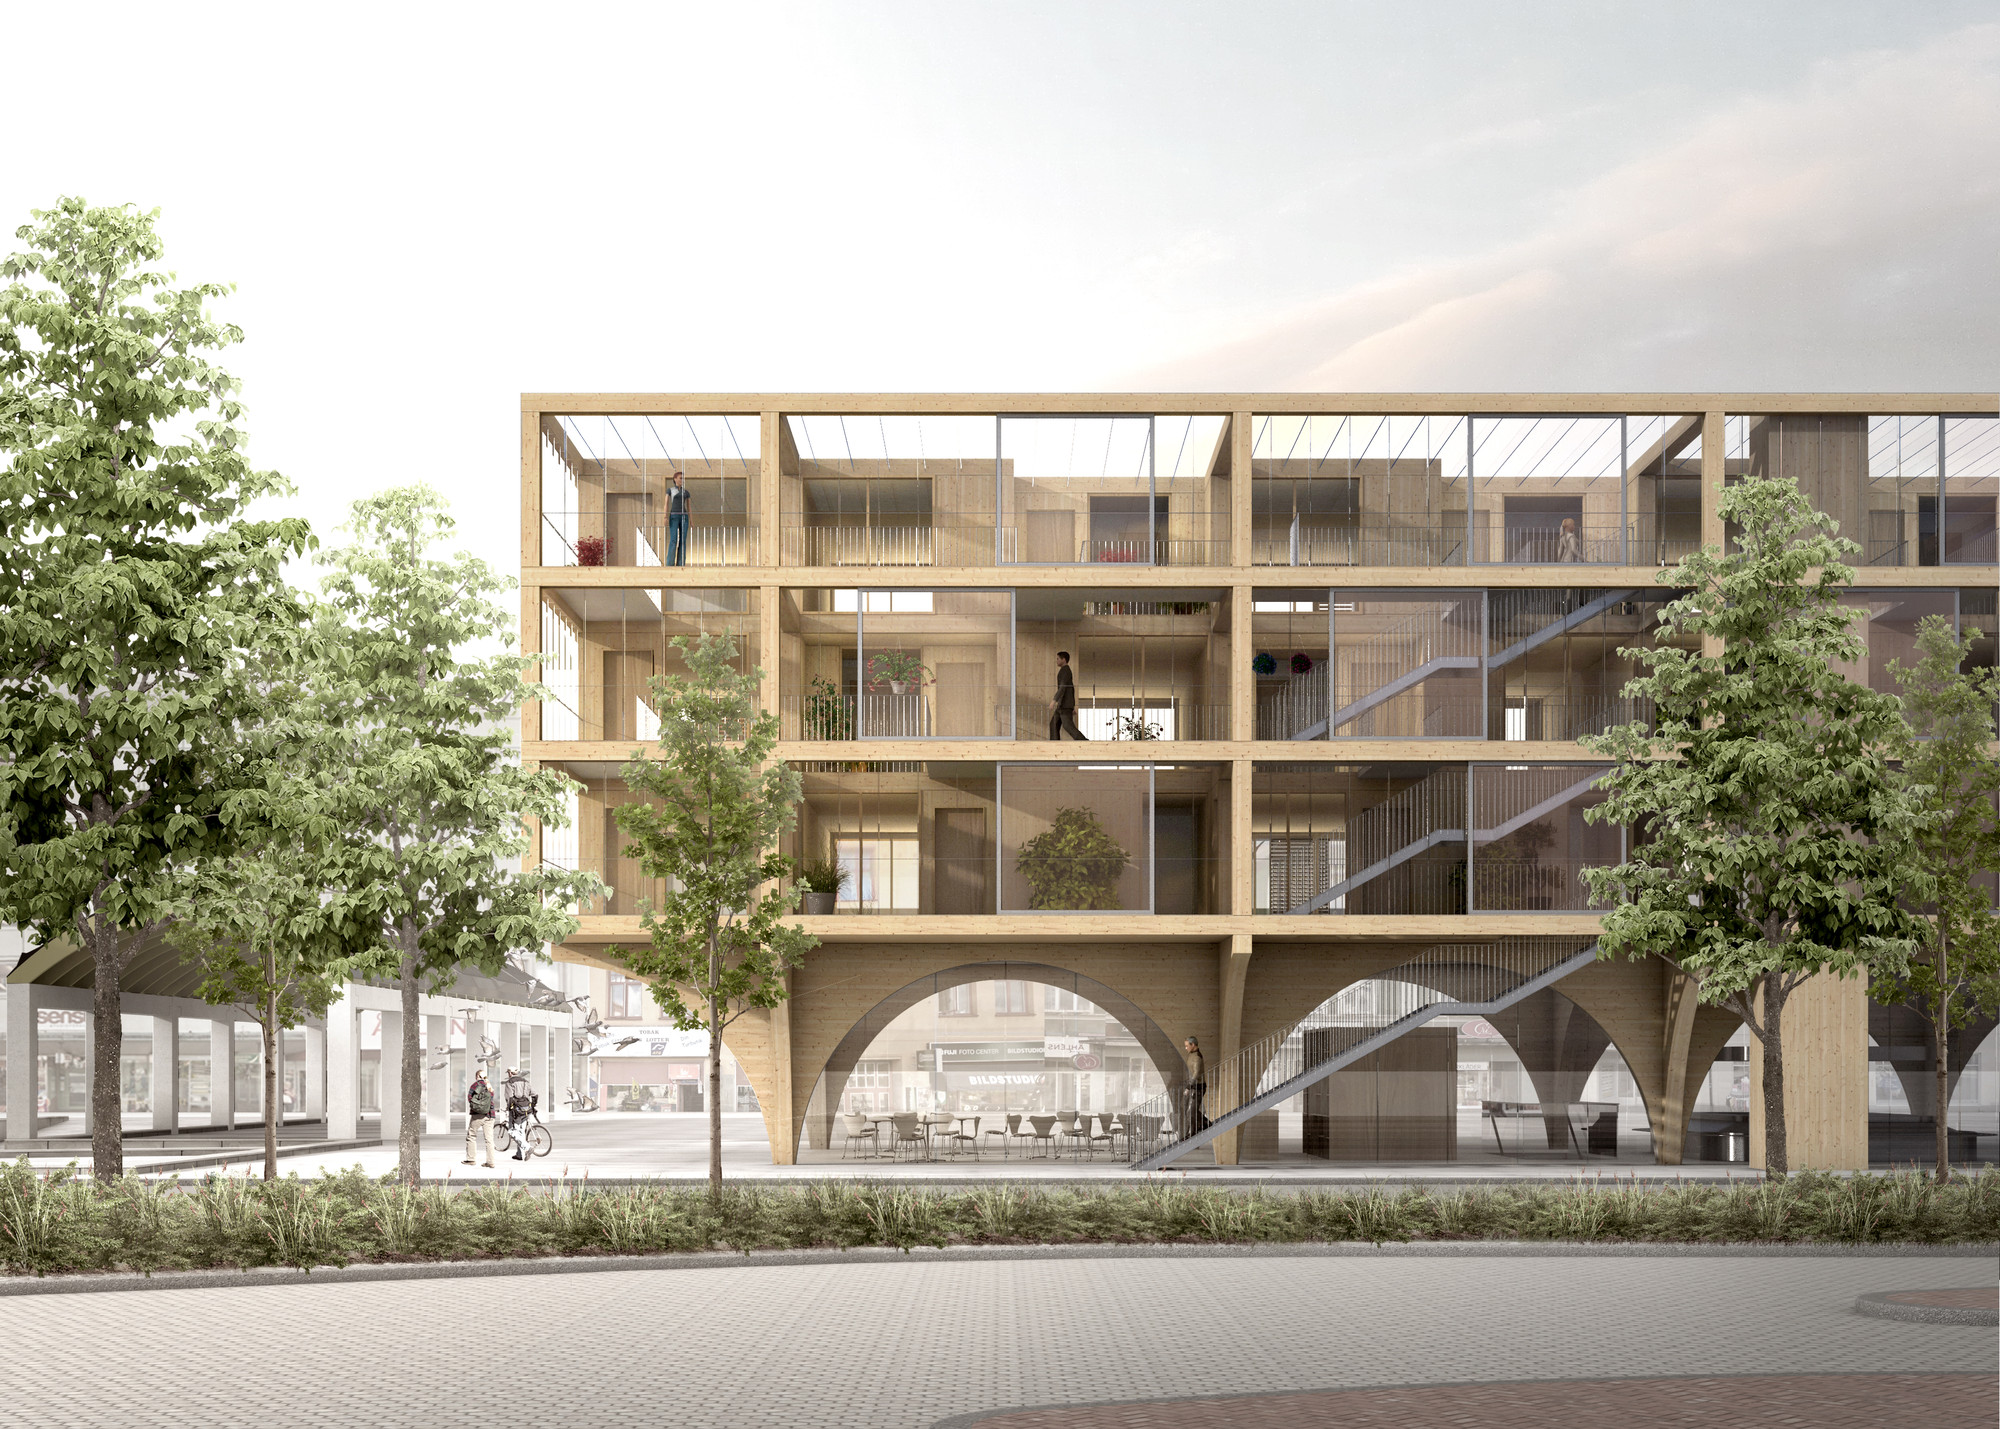 Jaja wins second prize for swedish housing and market hall hybrid archdaily - Affordable social housing ...